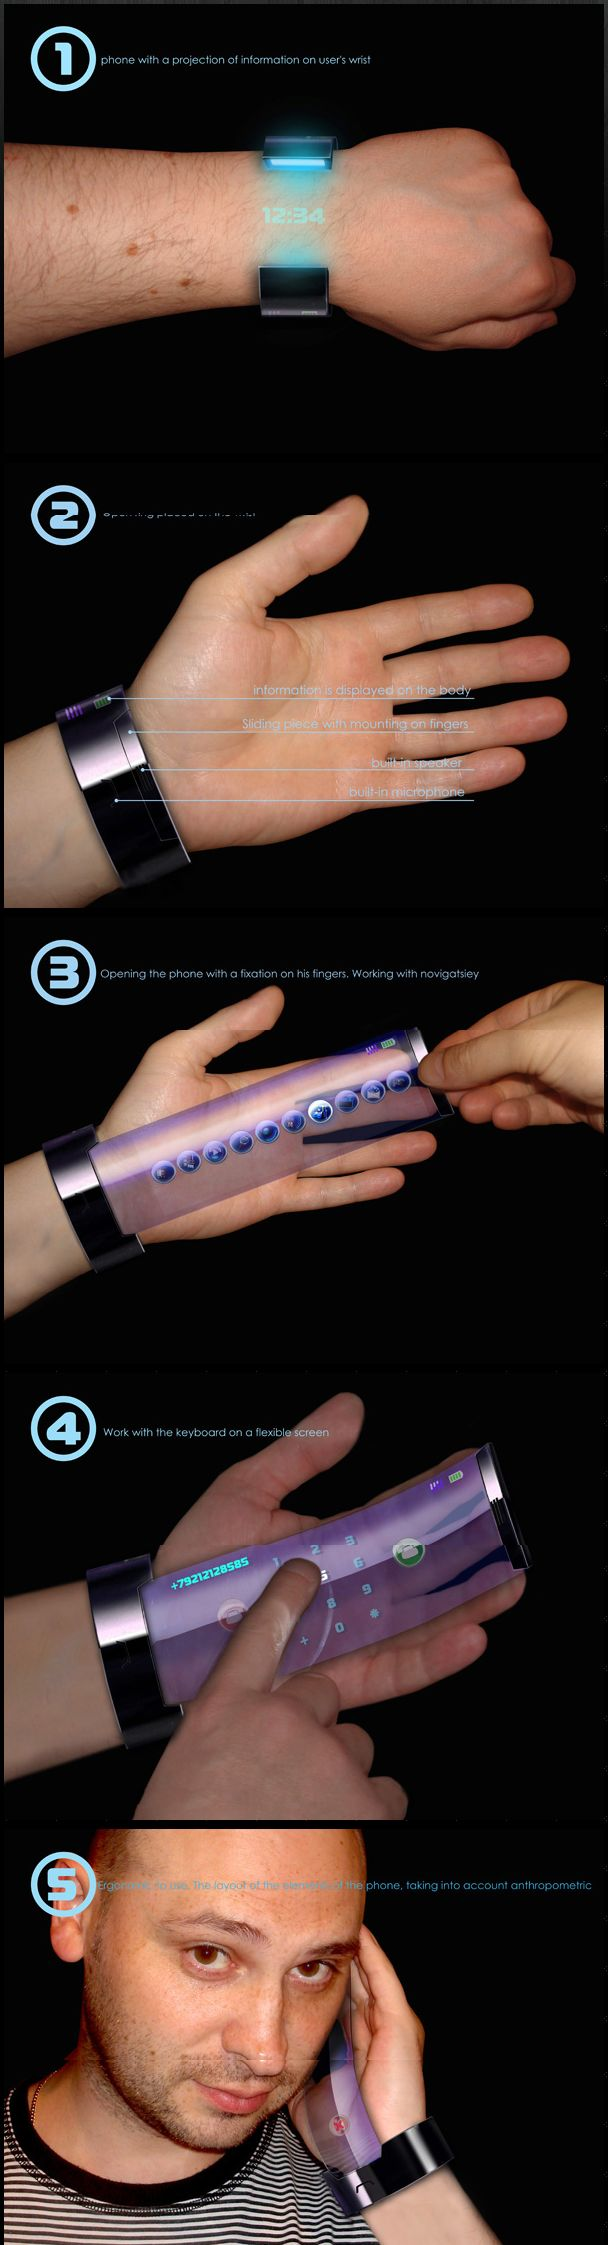 """Although still in the conceptual phase, the """"Rollerphone"""" designed by Alexey Chugunnikov is more than a sexy futuristic bracelet watch, it works as a phone"""